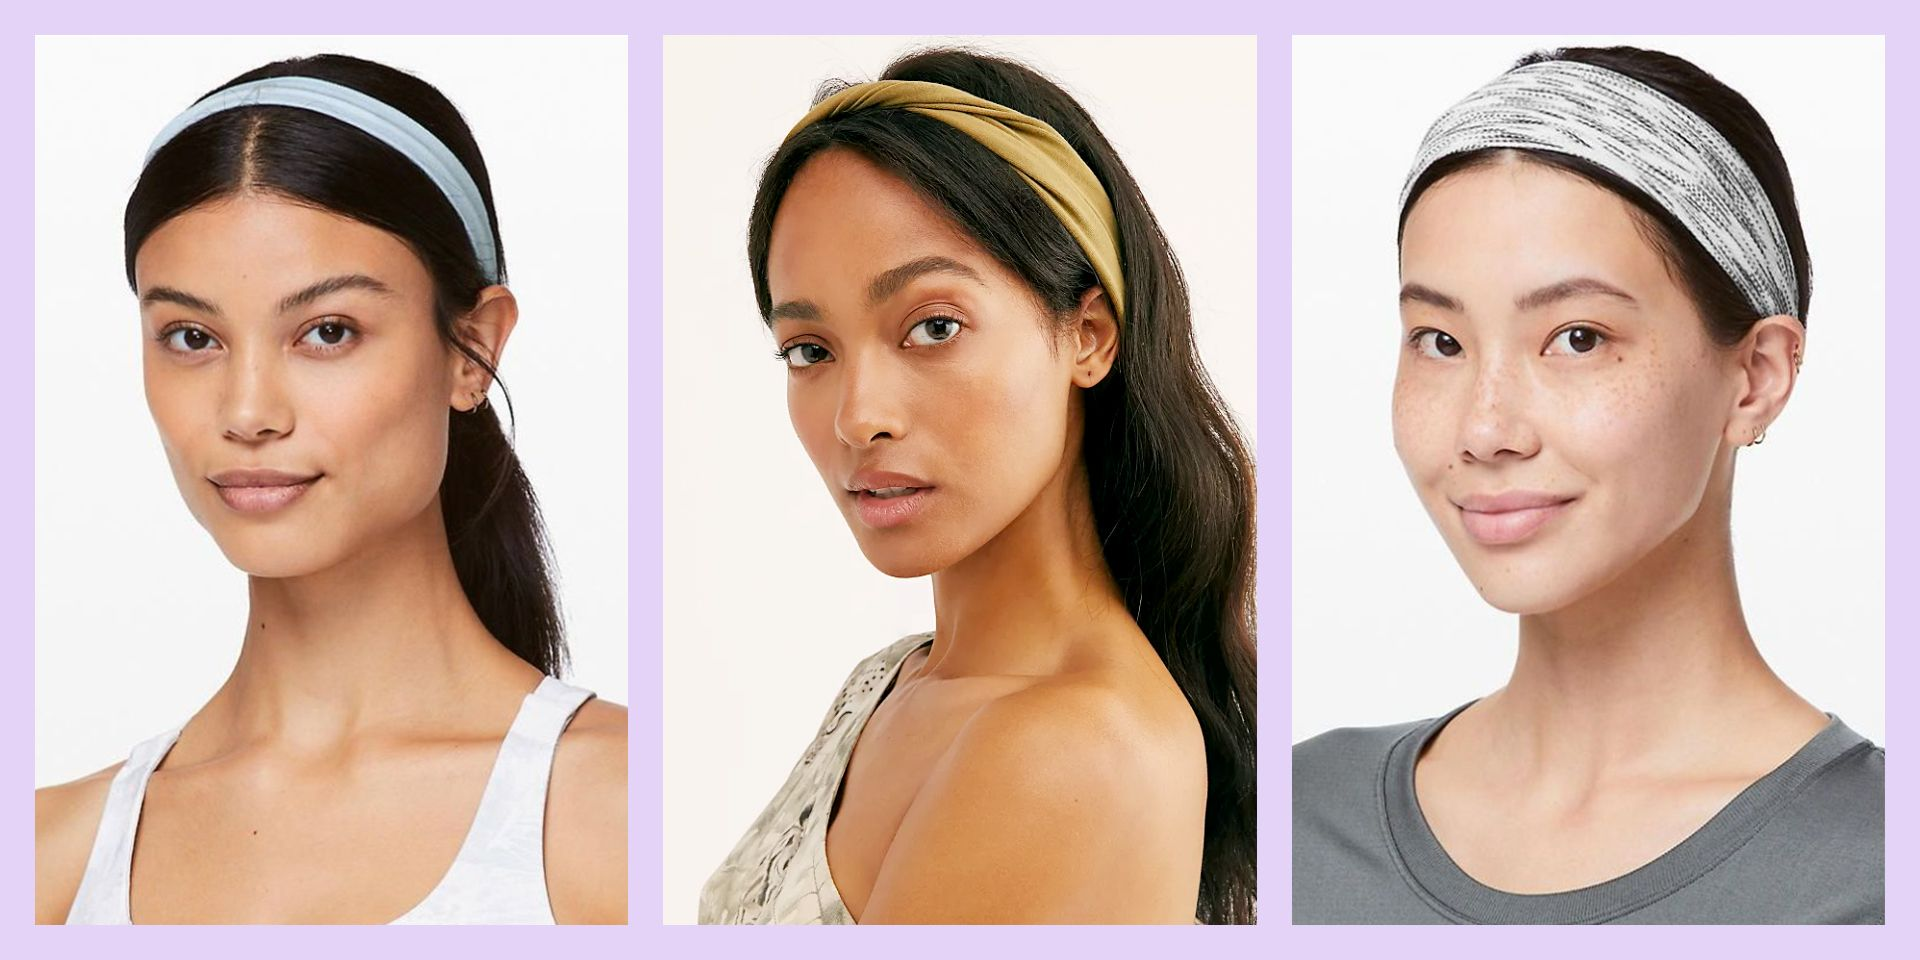 10 Best Workout Headbands That Will Stay Put No Matter How Hard You Sweat